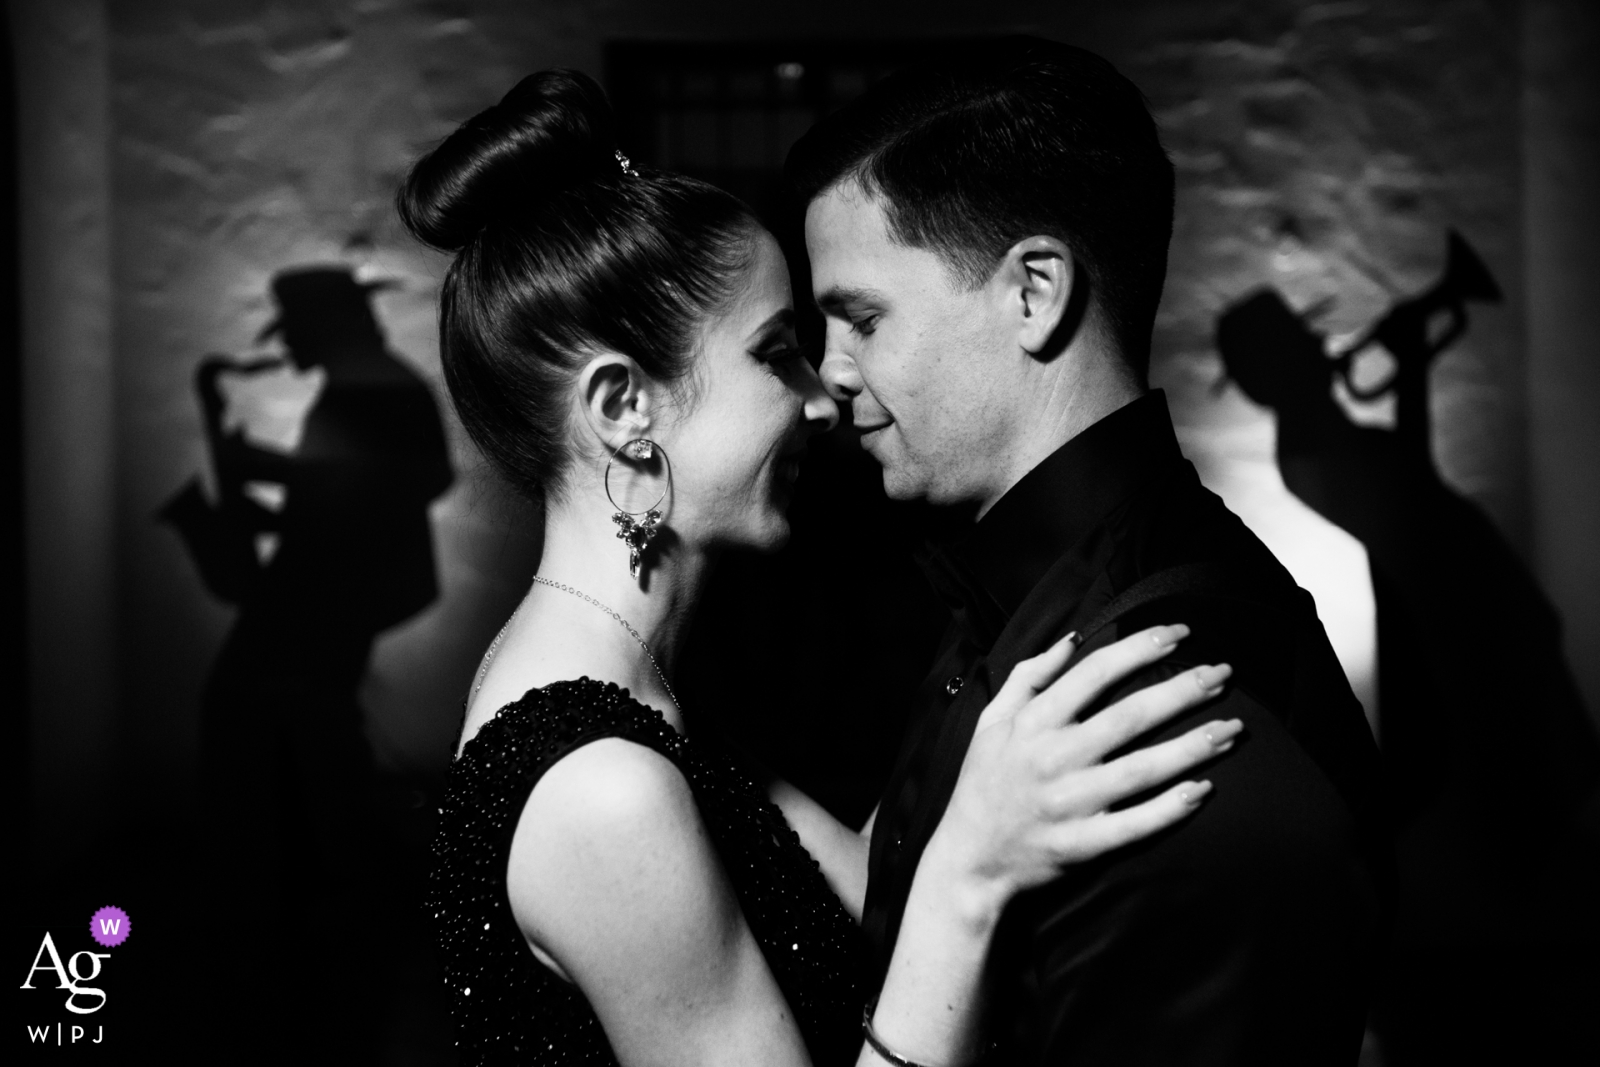 Wedding day portrait of the bride and groom on the dance floor of the reception at  Villa Woodbine, Miami, Florida